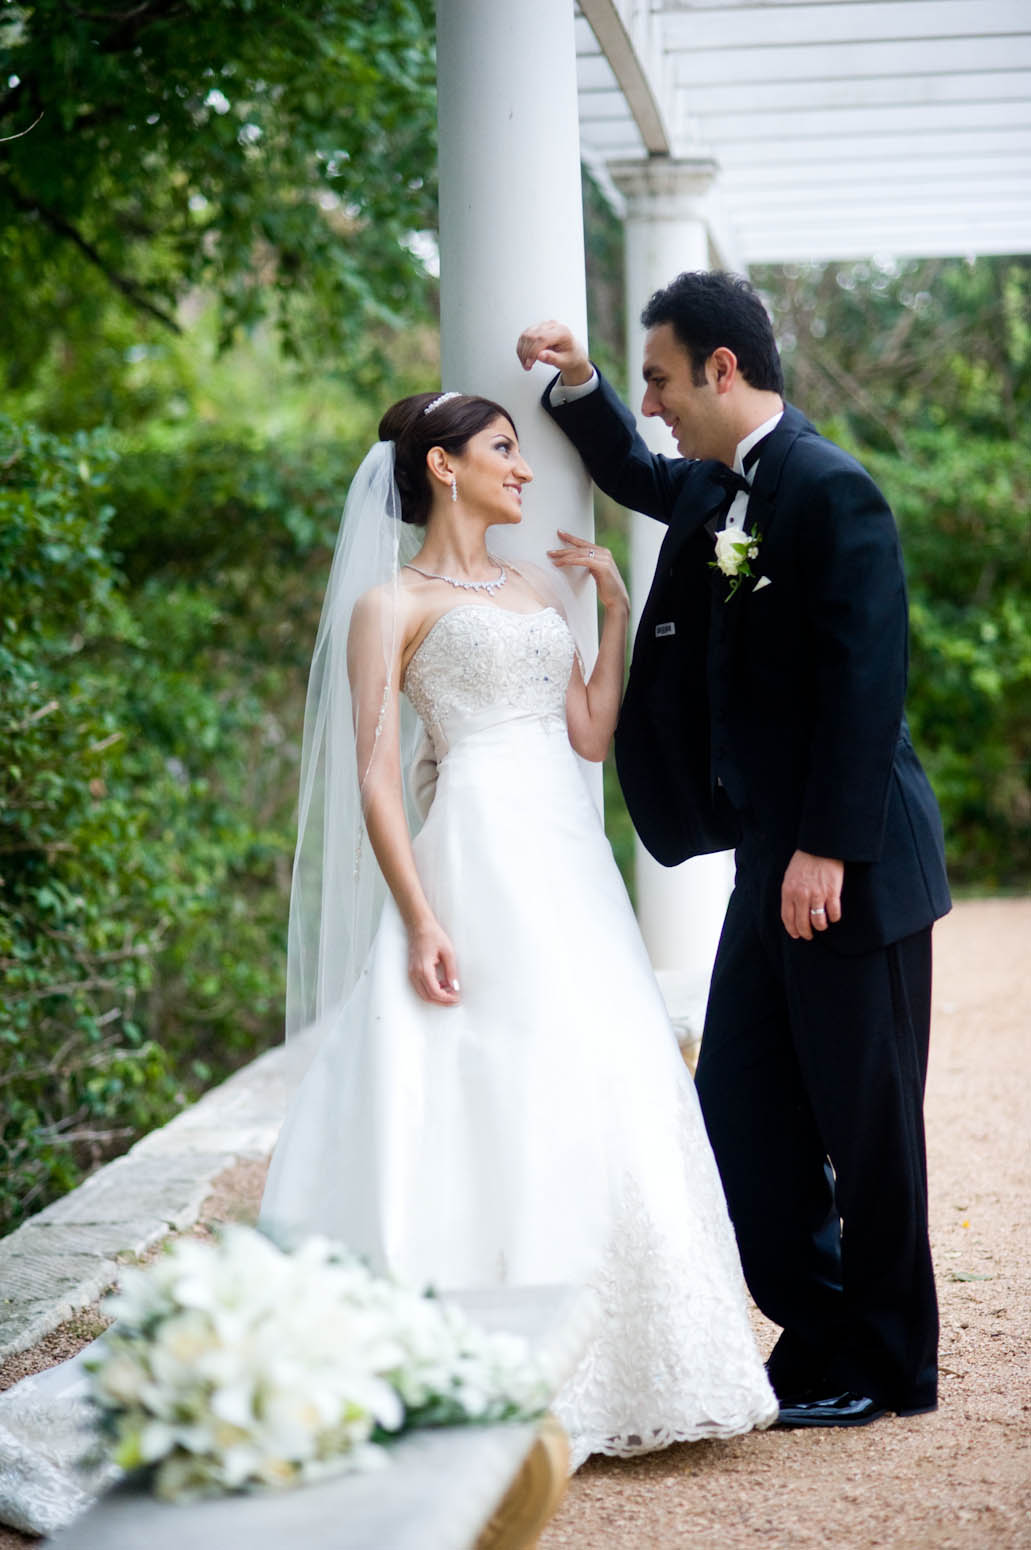 laguna_gloria_wedding_20